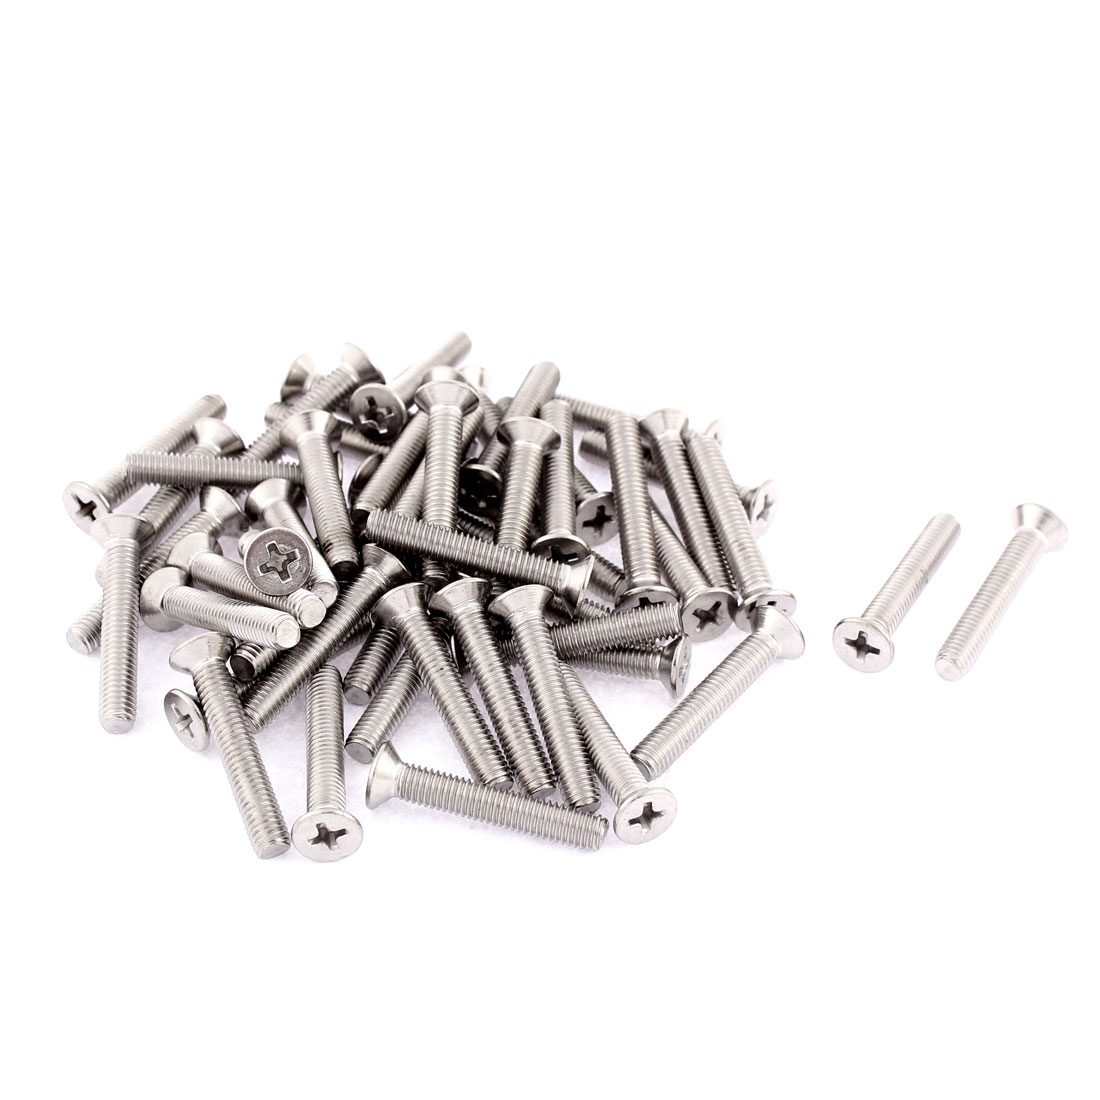 M5 x 30mm Phillips Socket Stainless Steel Countersunk Bolts Machine Screws 50pcs